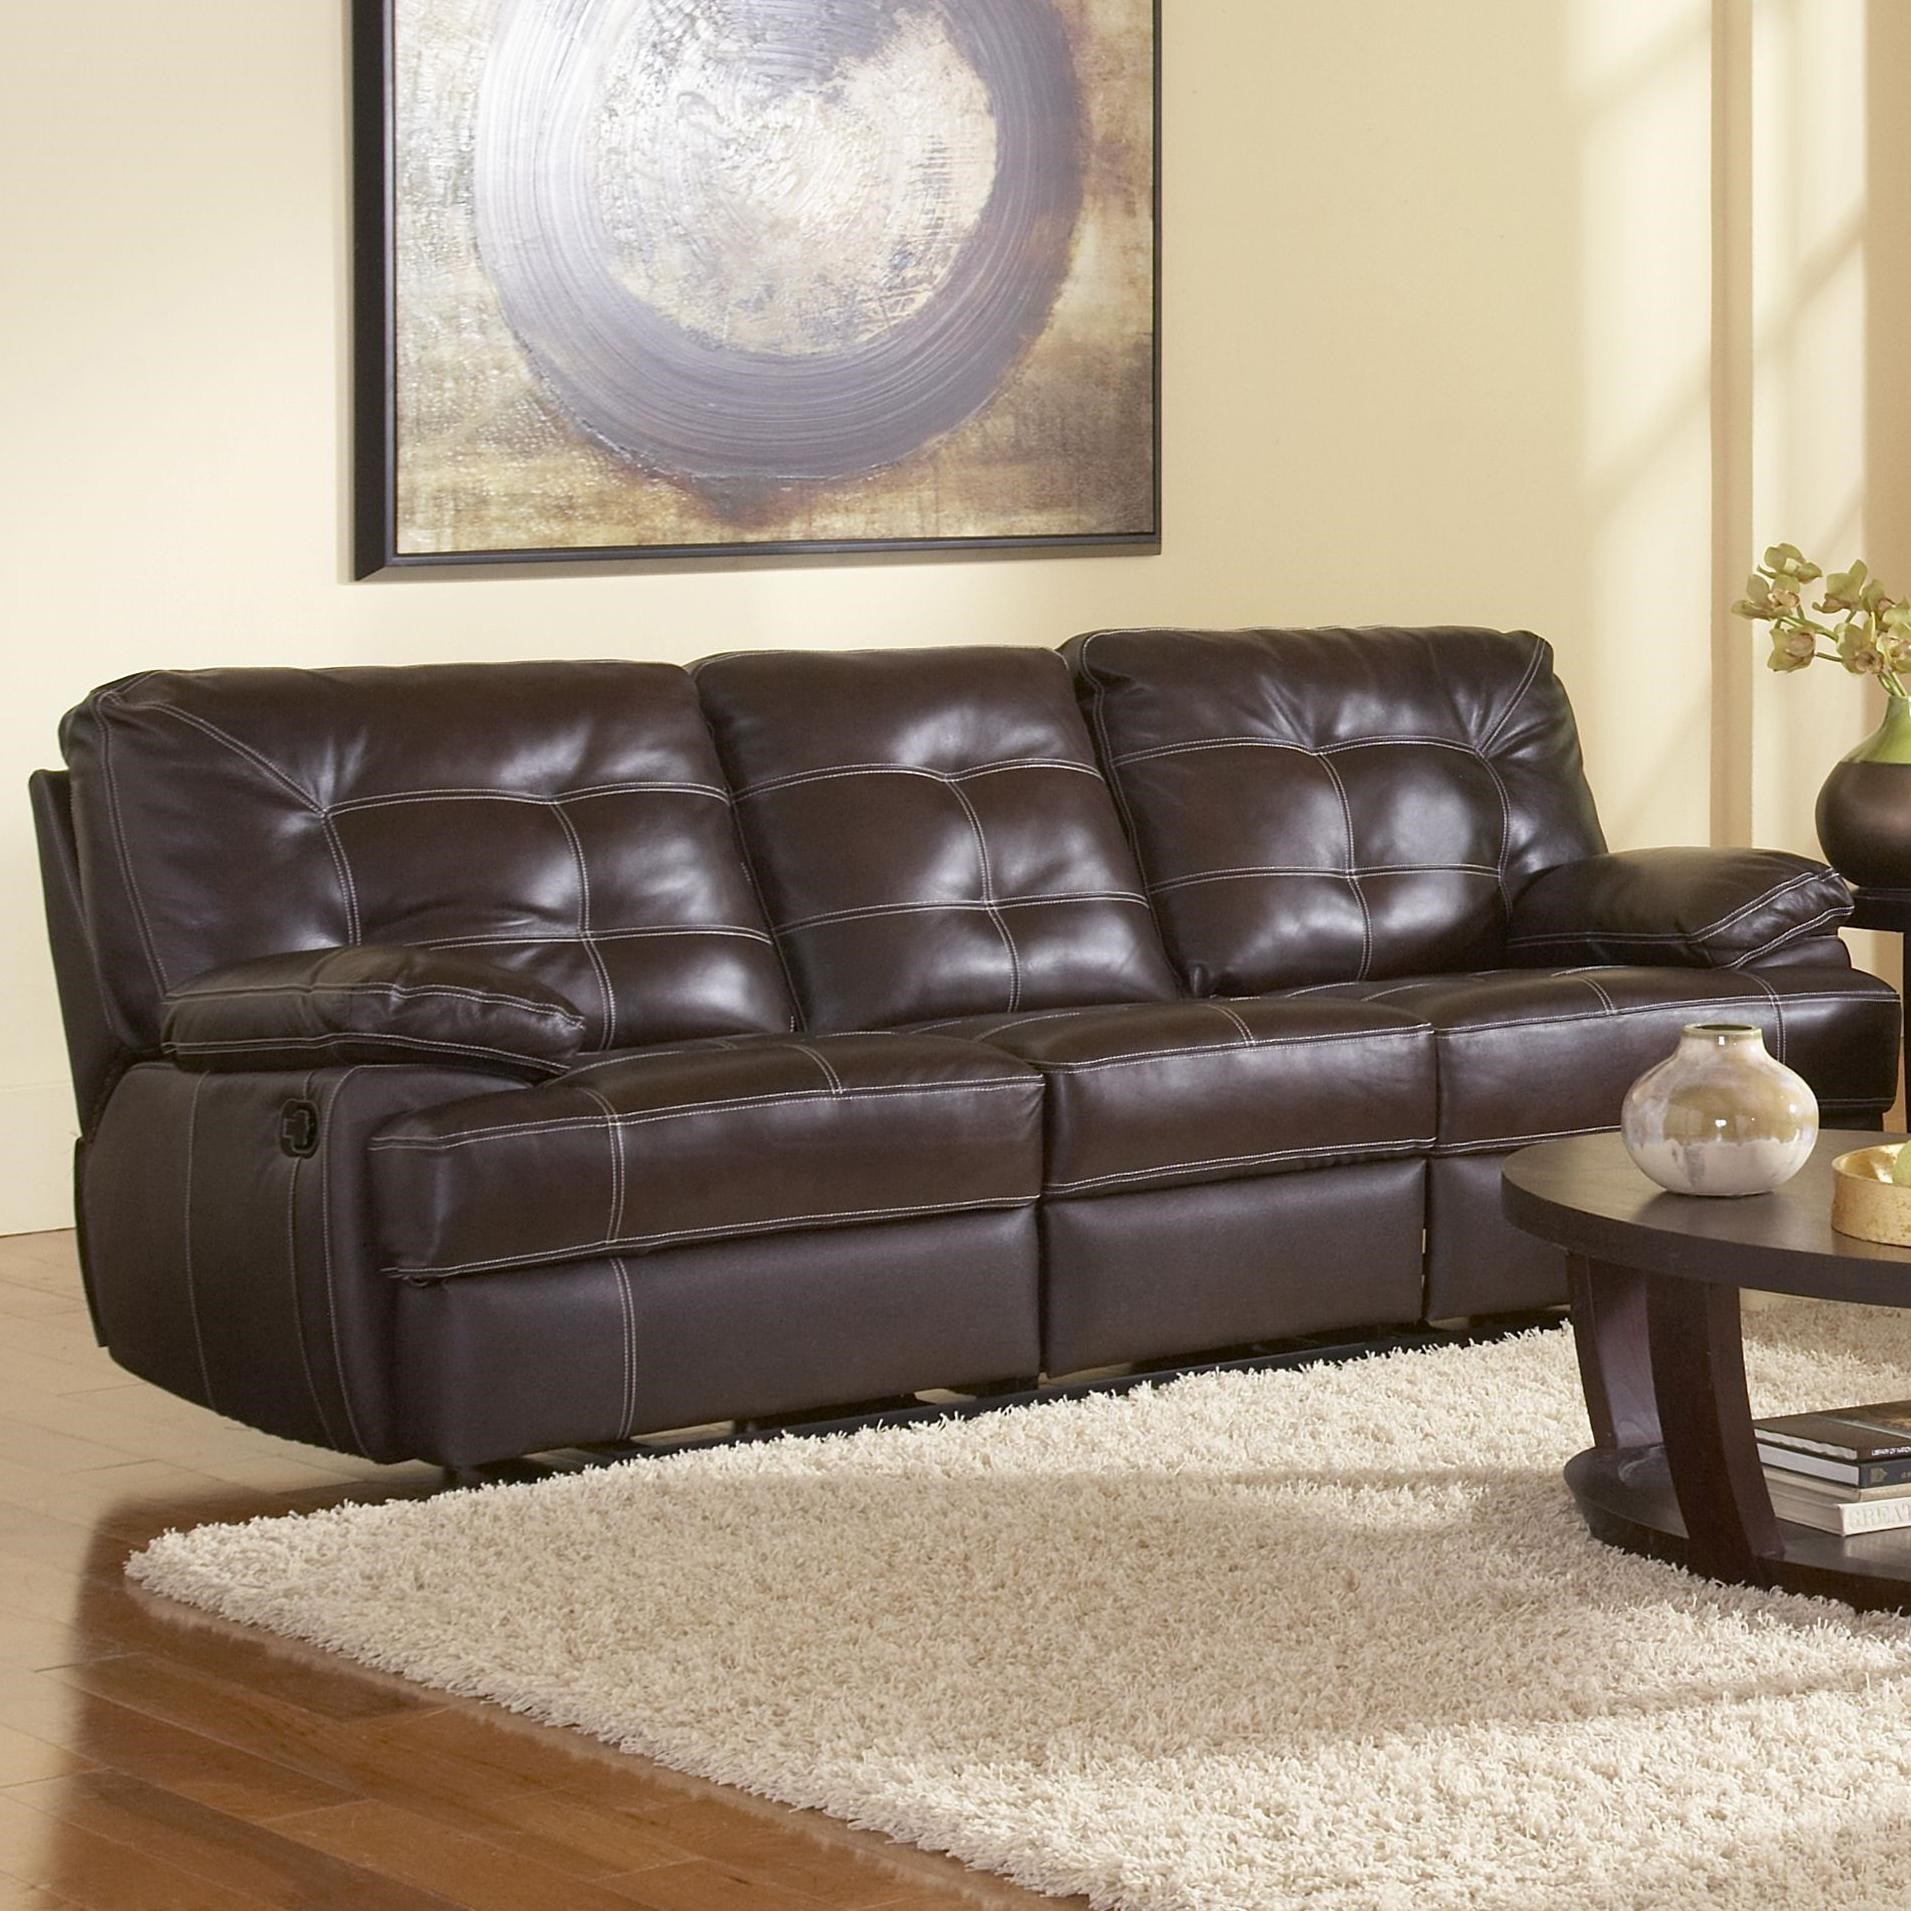 Leather Italia USA Dalton Contemporary Reclining Sofa with Contrast Stitching & Leather Italia USA Dalton Contemporary Reclining Sofa with ... islam-shia.org